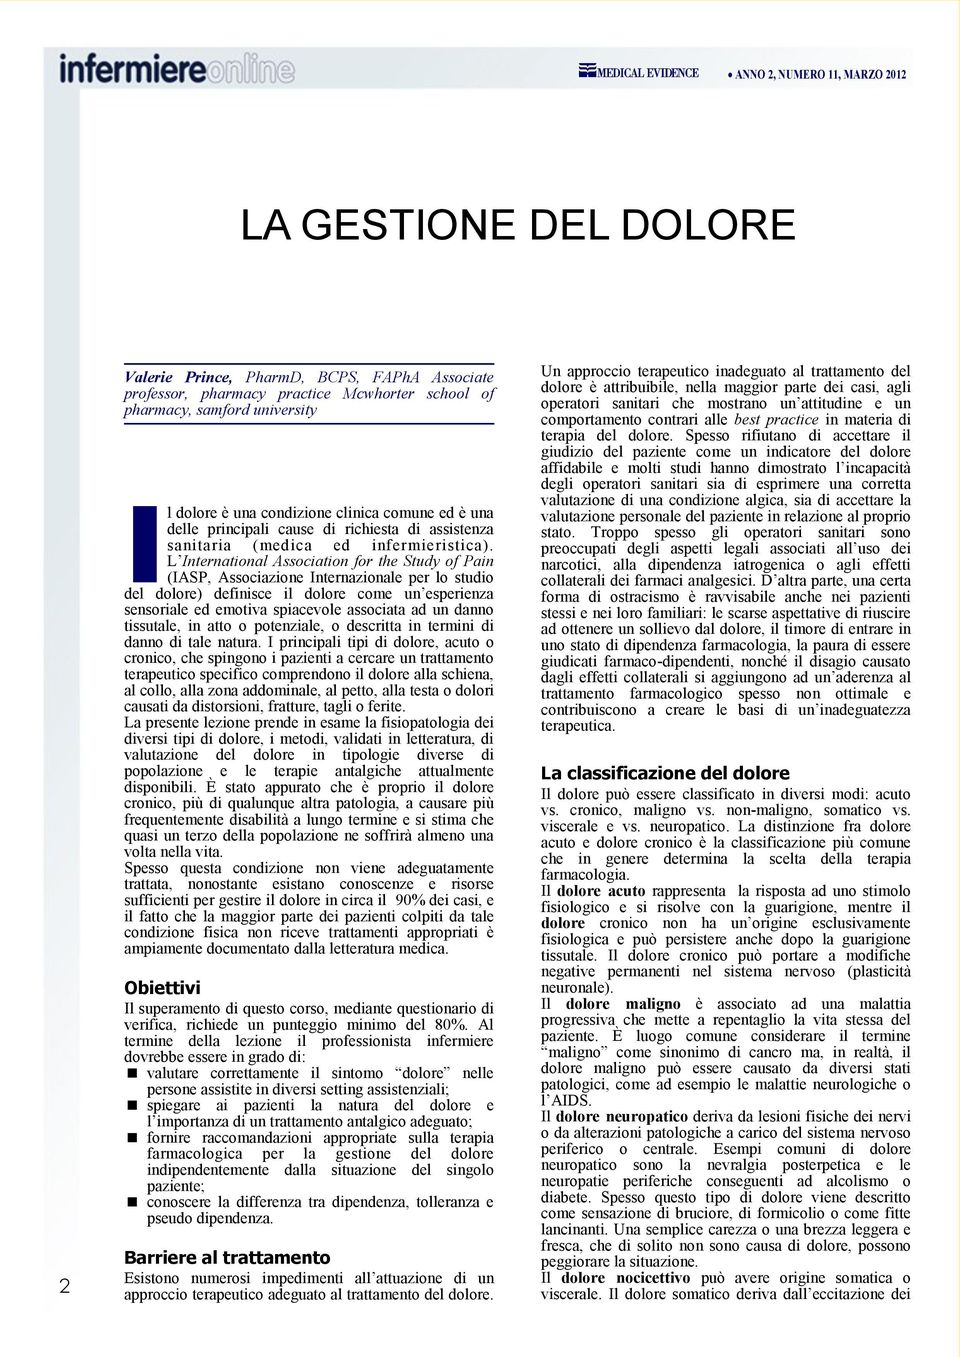 L International Association for the Study of Pain (IASP, Associazione Internazionale per lo studio del dolore) definisce il dolore come un esperienza sensoriale ed emotiva spiacevole associata ad un